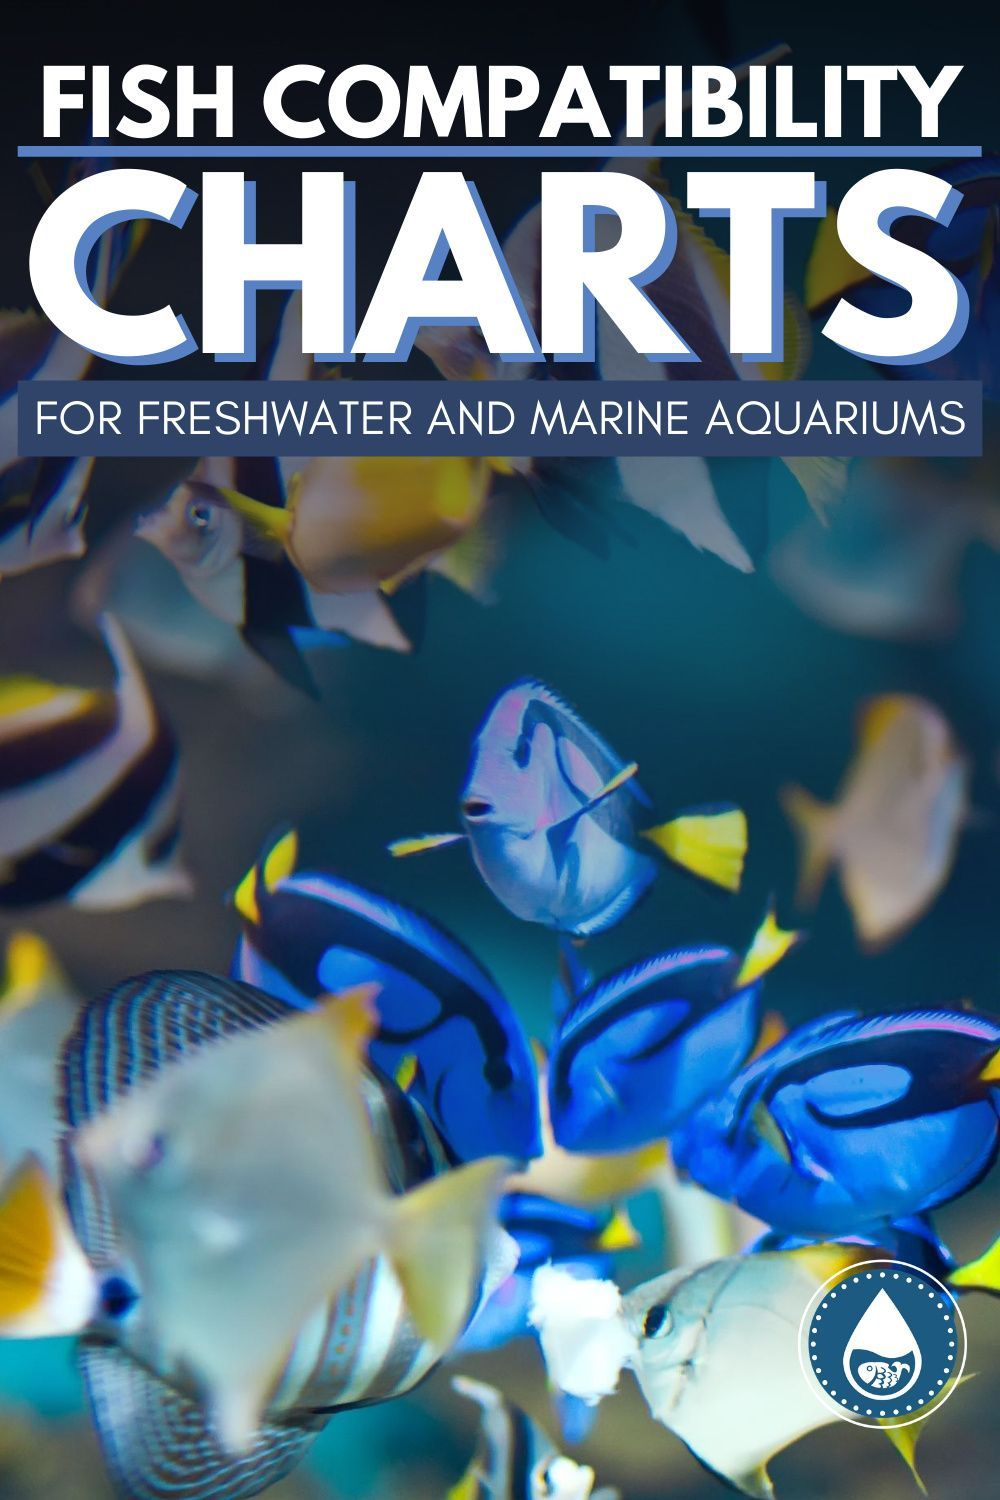 Fish Compatibility Charts for Freshwater and Marine ...